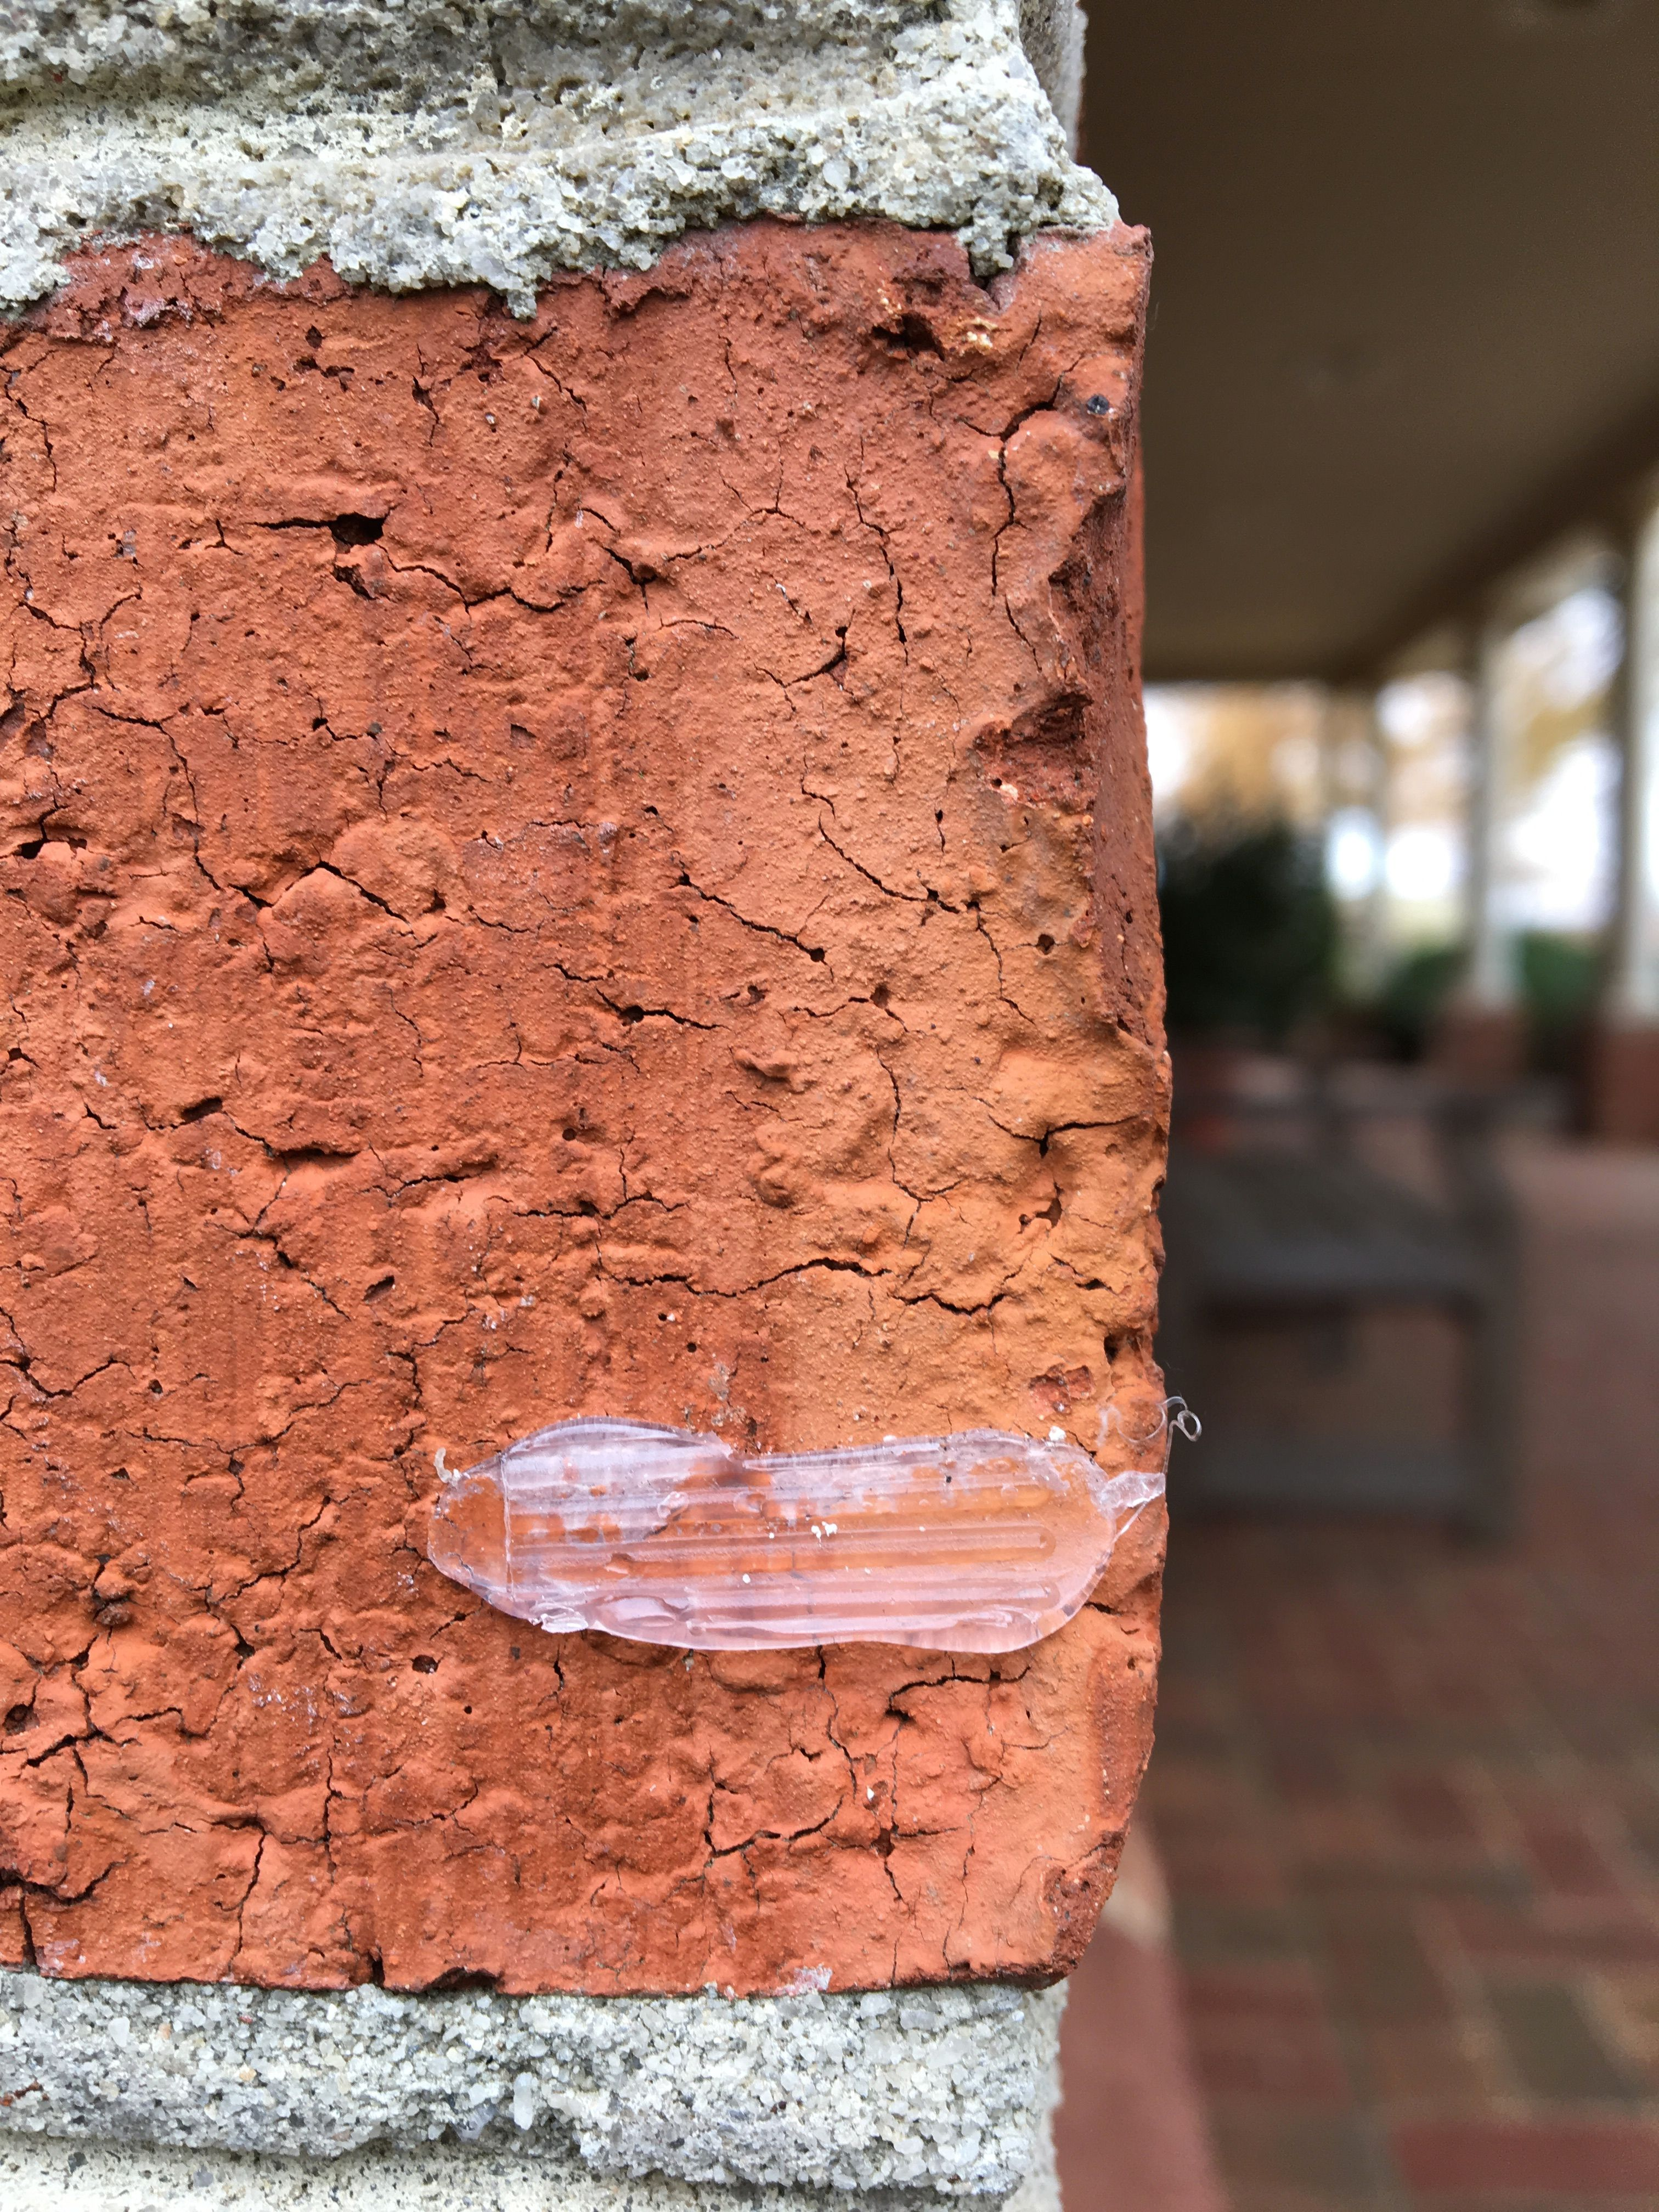 How To Remove Glue From Brick When You Take Down Christmas Lights Learn More Hanging Christmas Lights Light Brick Christmas Lights Outside